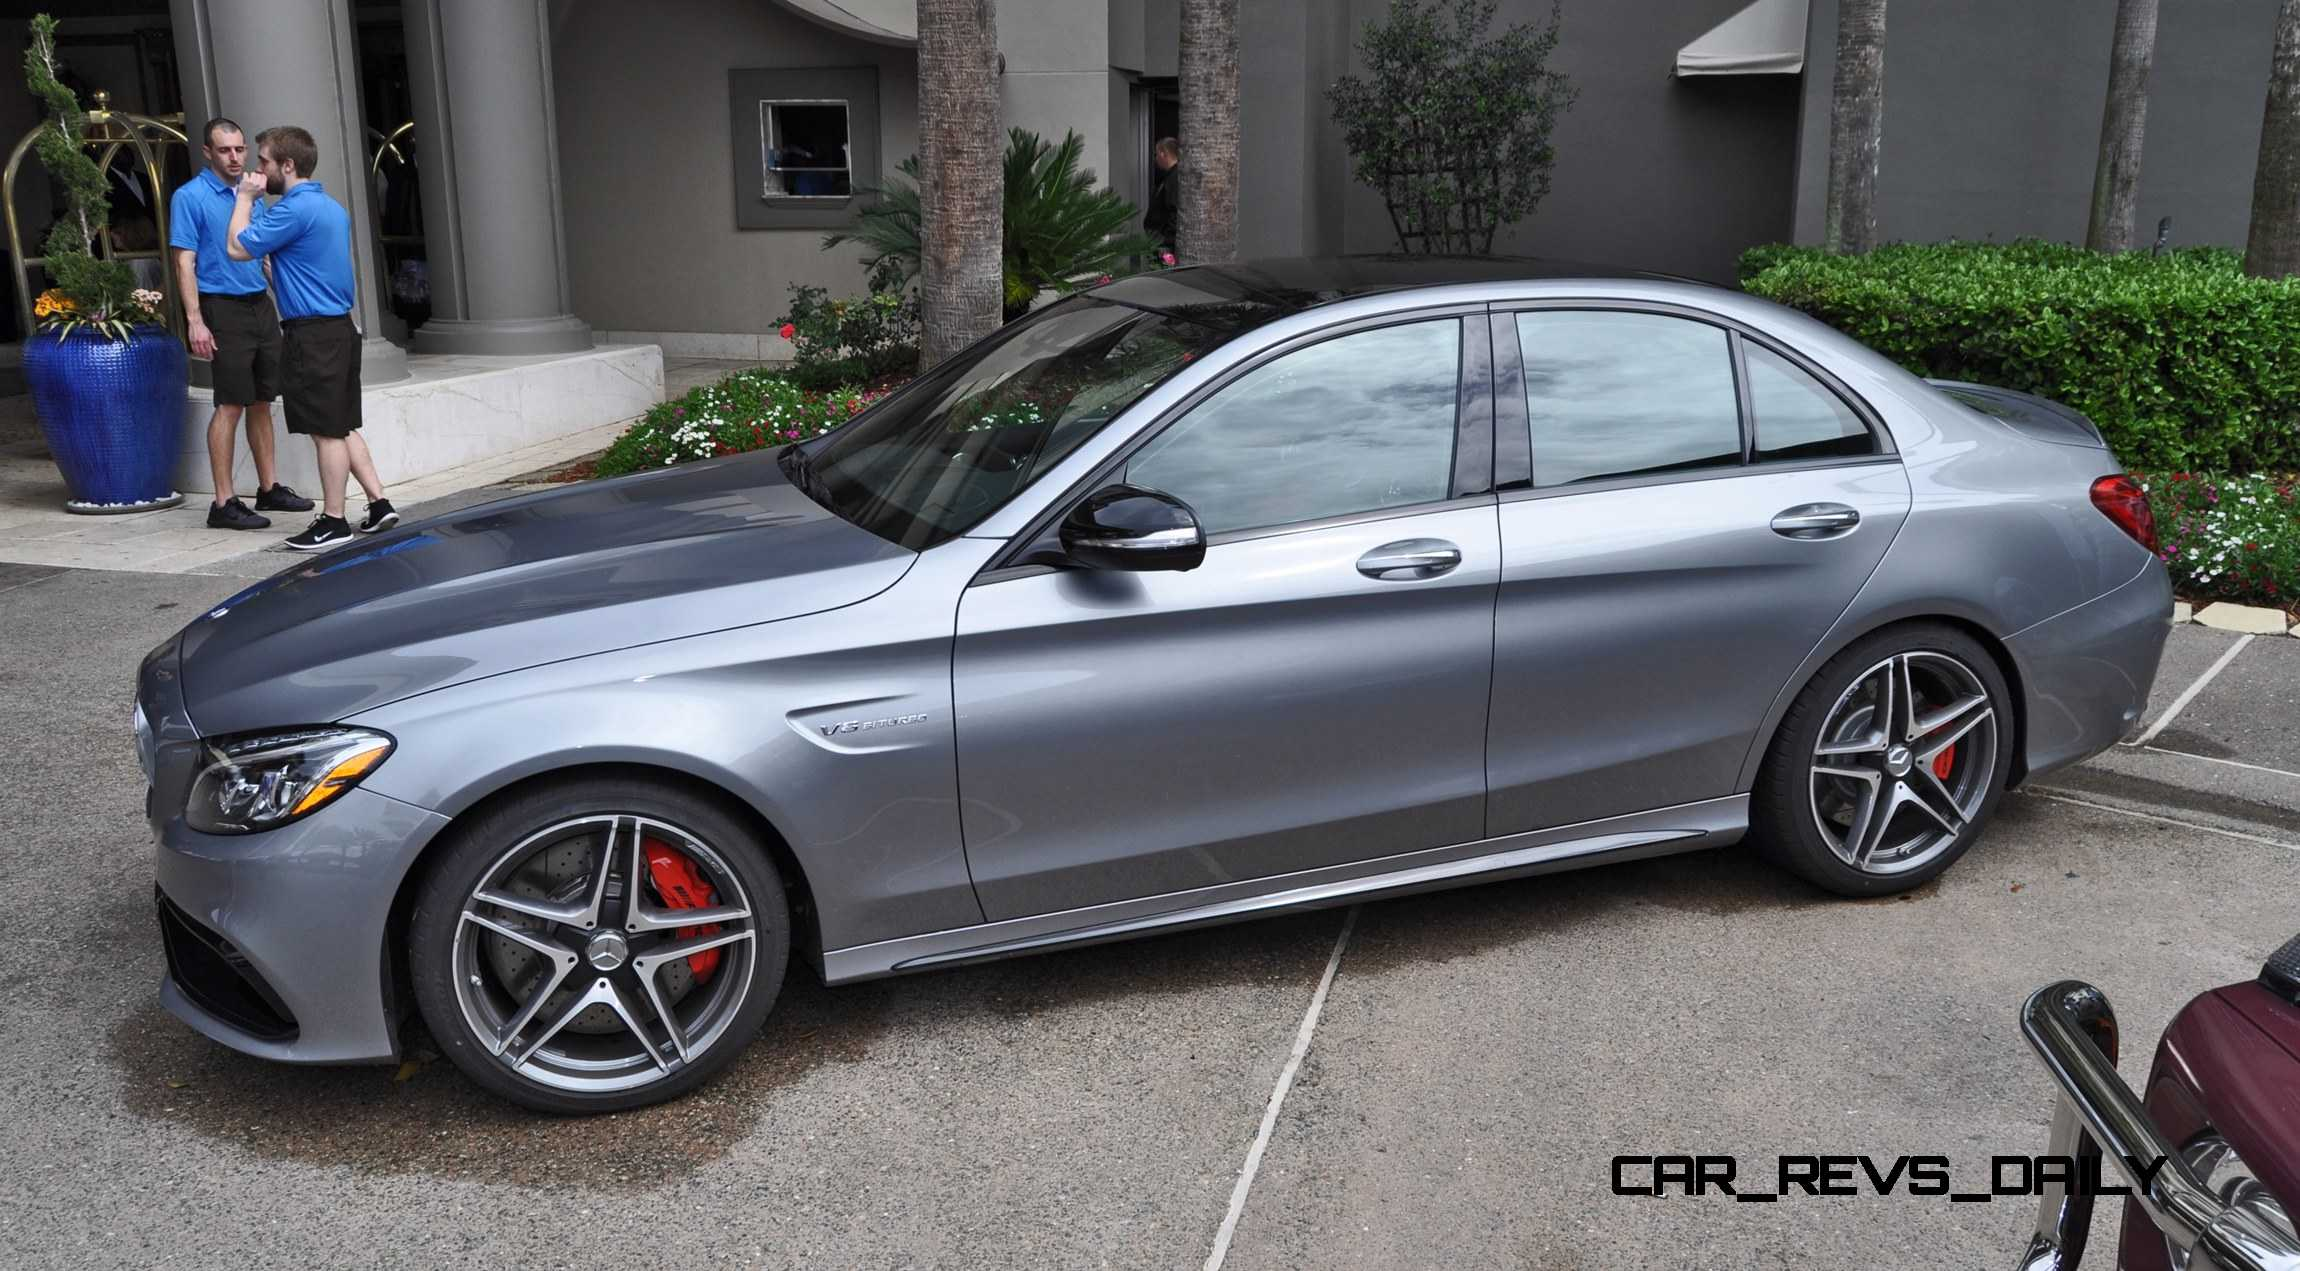 2015 mercedes amg c63 s in 63 real life photos inside and out car revs. Black Bedroom Furniture Sets. Home Design Ideas